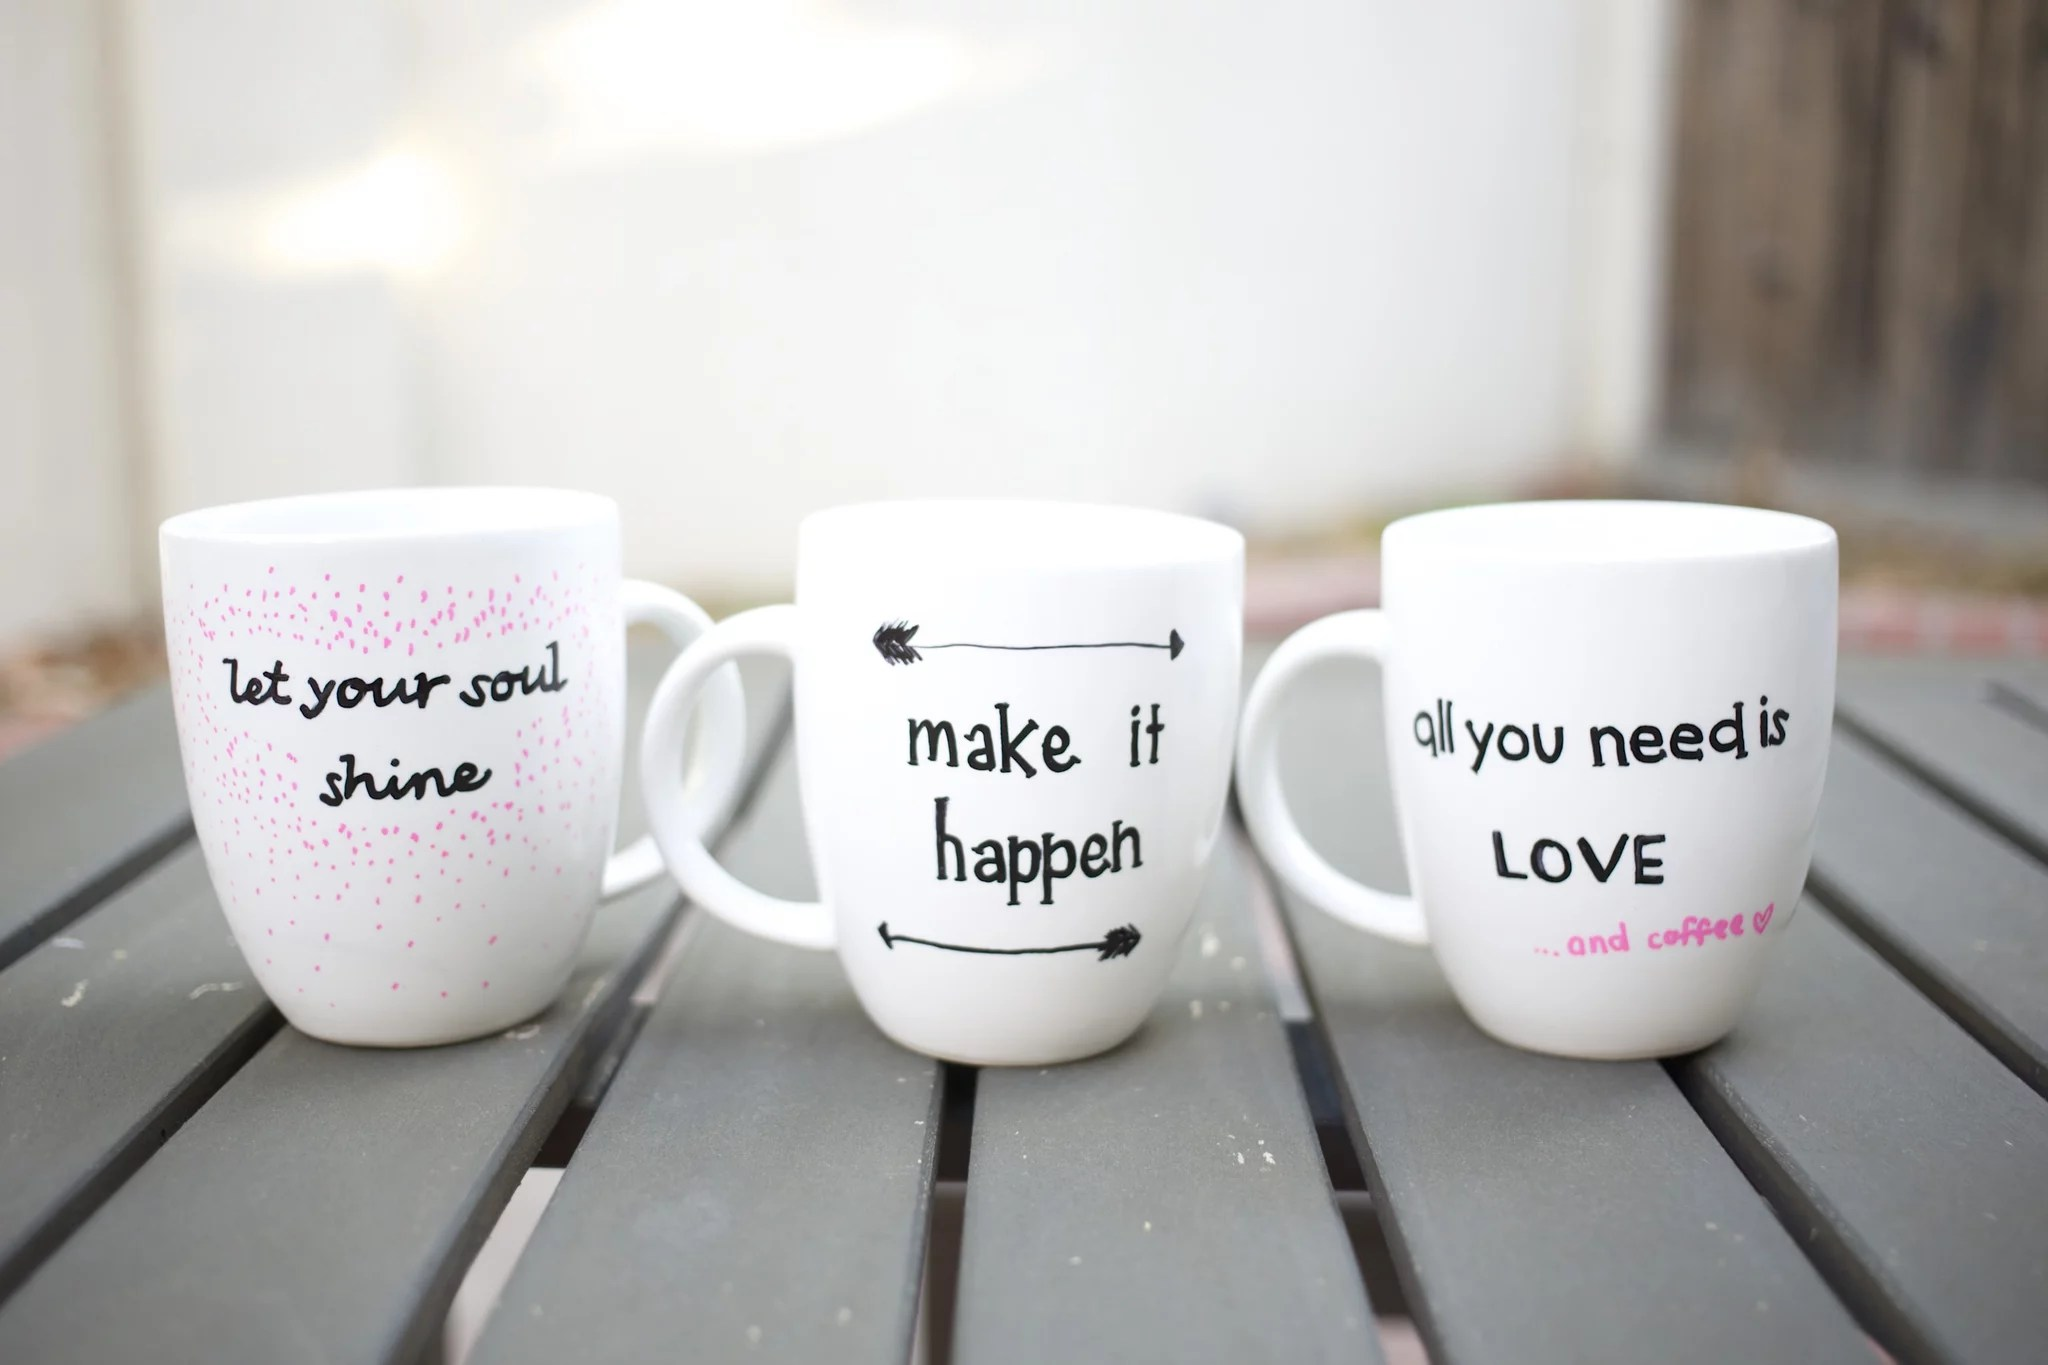 Teekanne Tee Kaufen Diy Quote Stenciled Sharpie Mugs | Popsugar Smart Living